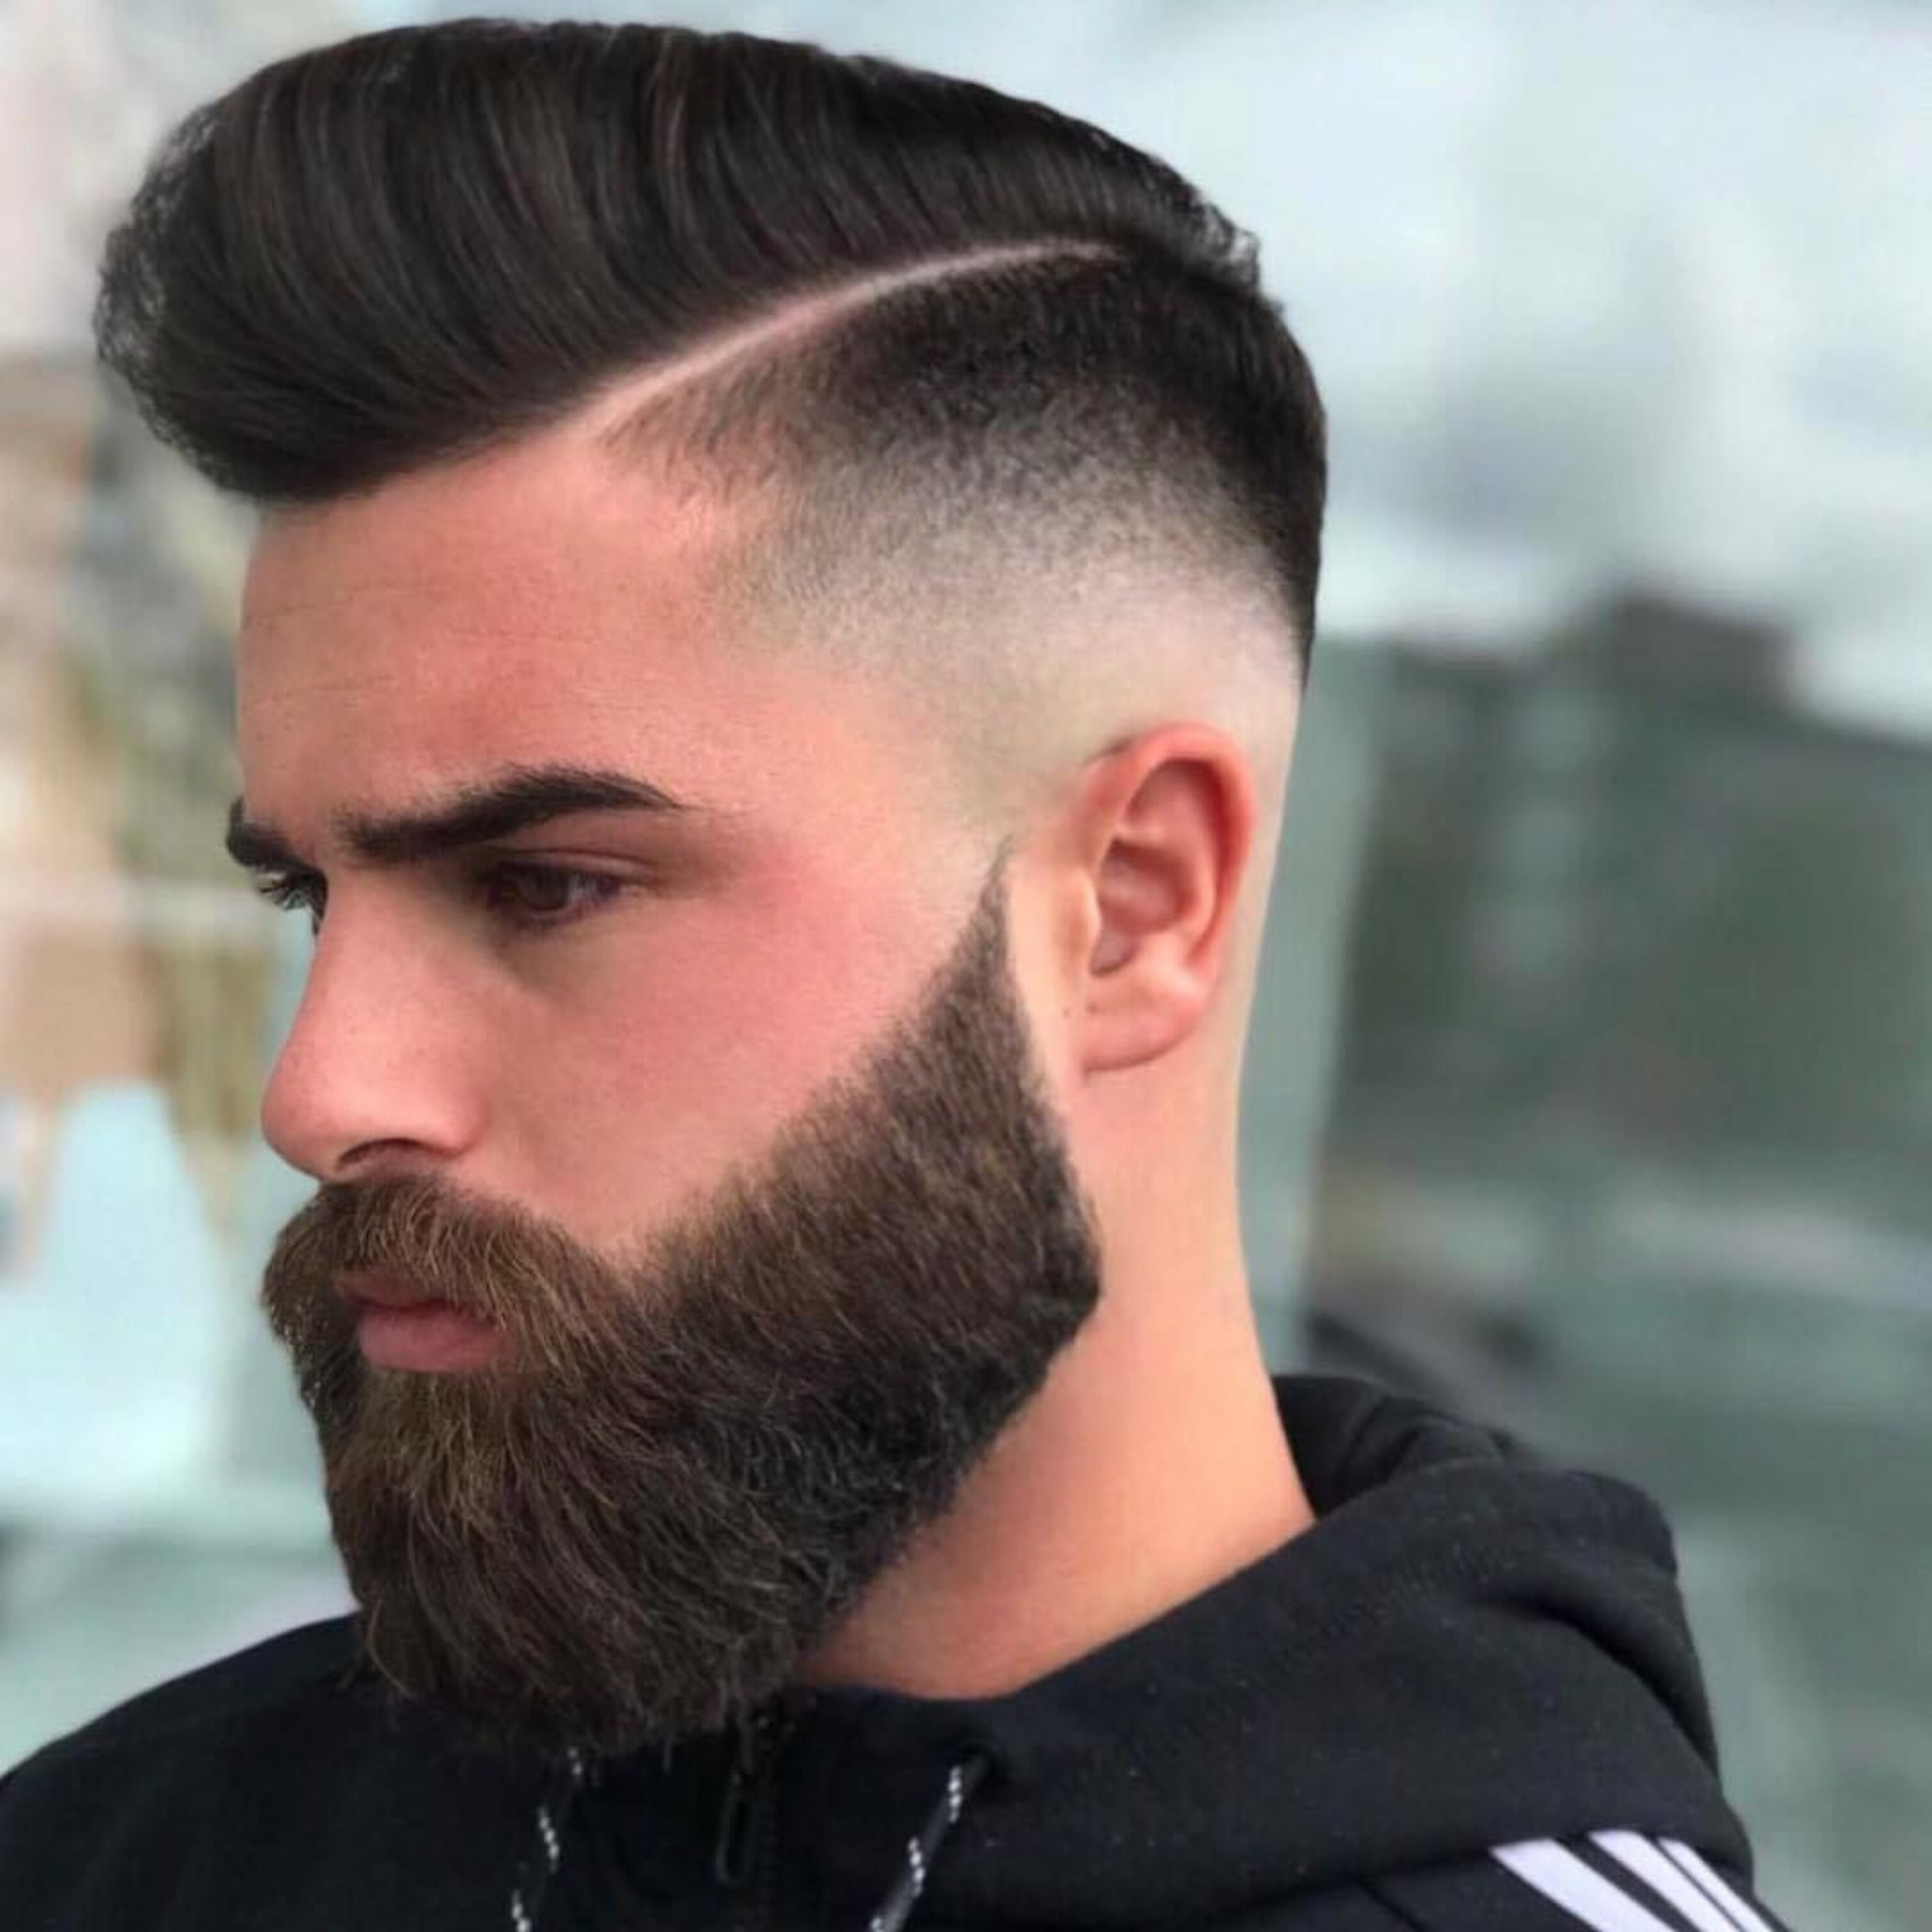 A full beard for men with a crew cut and high fade look.